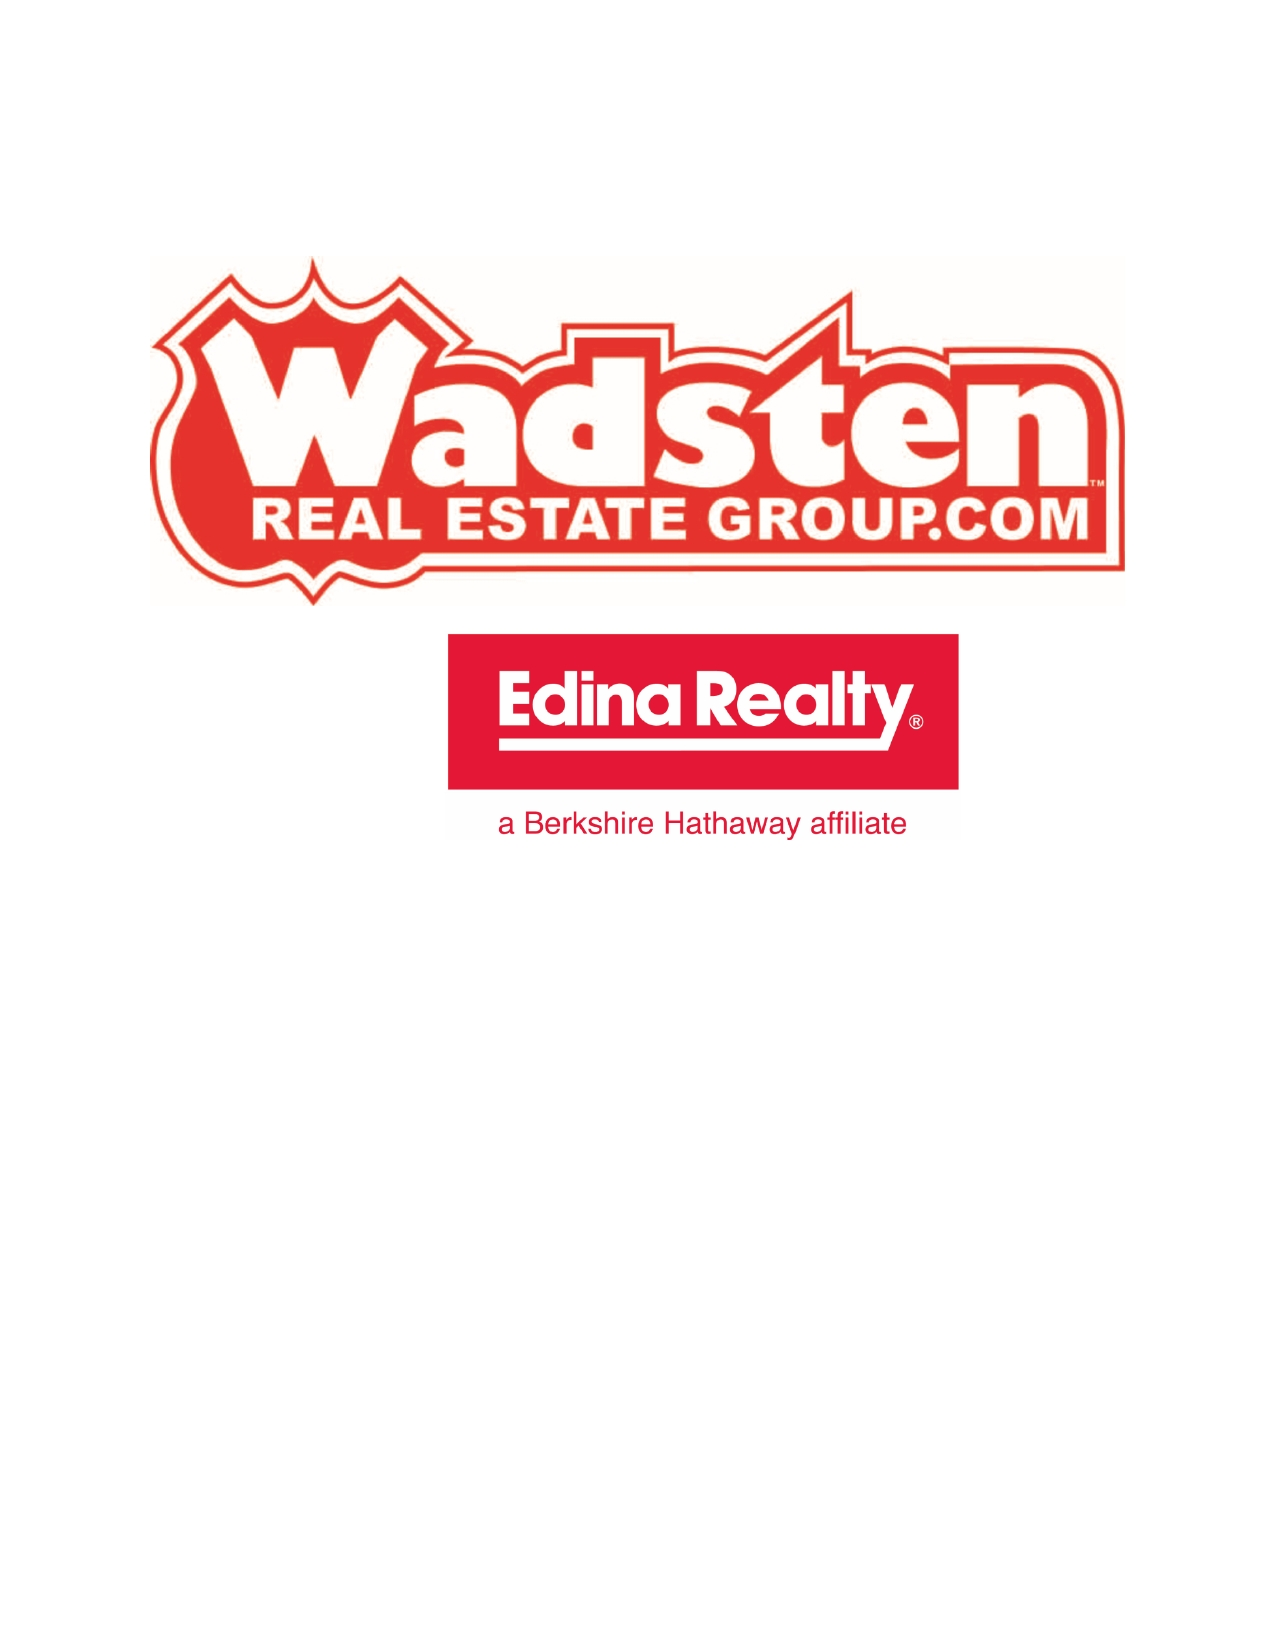 Wadsten Real Estate Group - Edina Realty